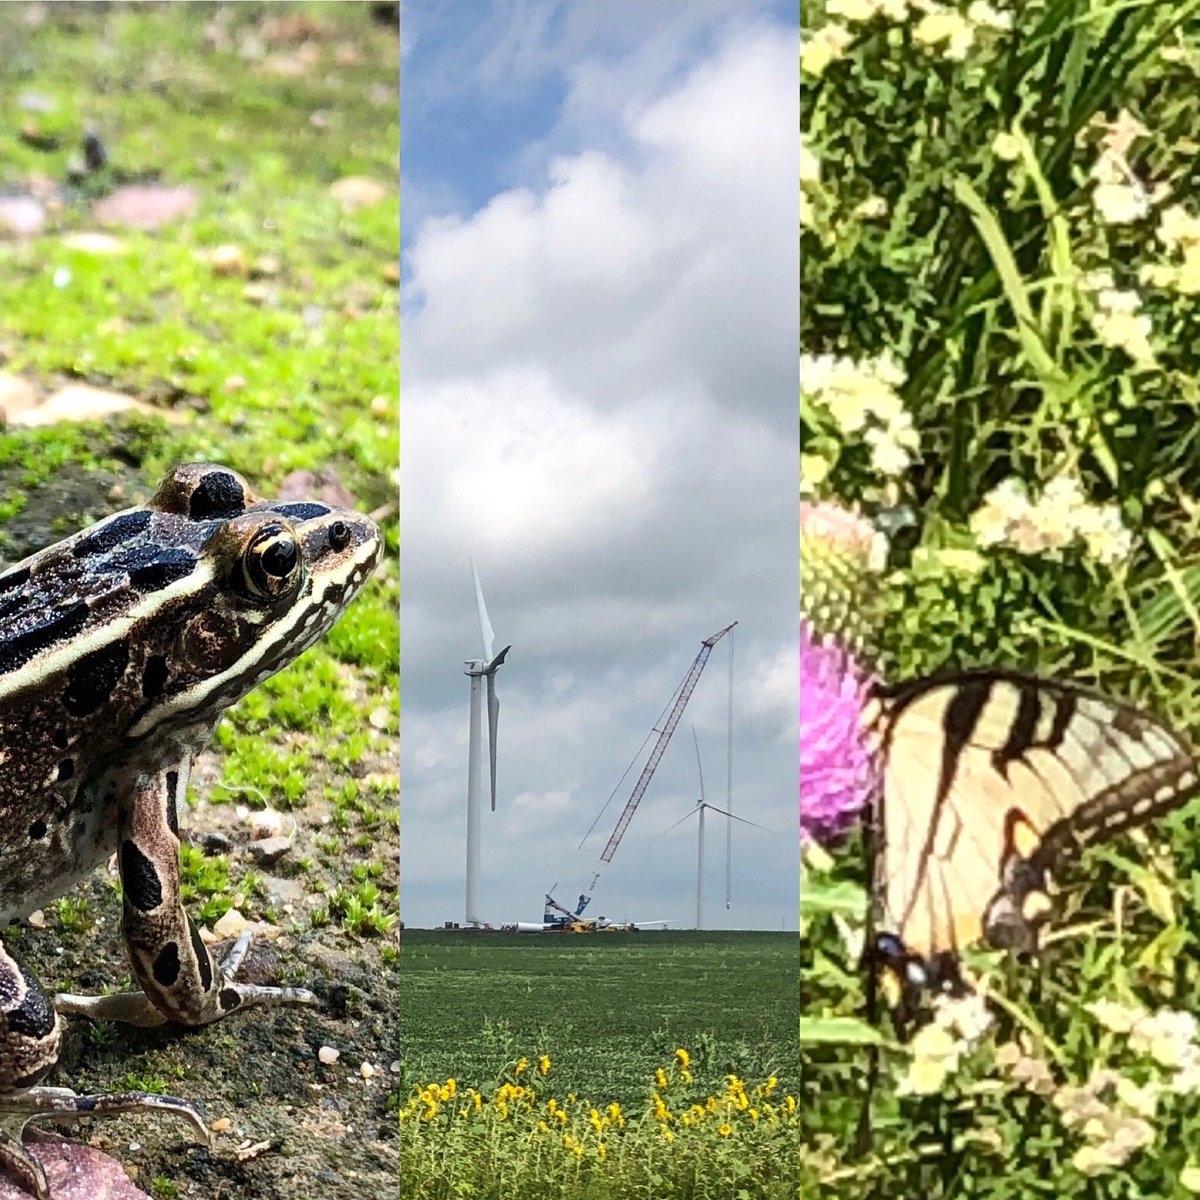 #workhard #flyharder.  #JWCrew wanted to share some of their photos of a location shoots. #windturbine #construction #tagging #butterflies #nature #memebrs #flyon (bonus) what's the max alt. allowed for wind turbine inspections? #popquizpic.twitter.com/bwBMHdBc2S